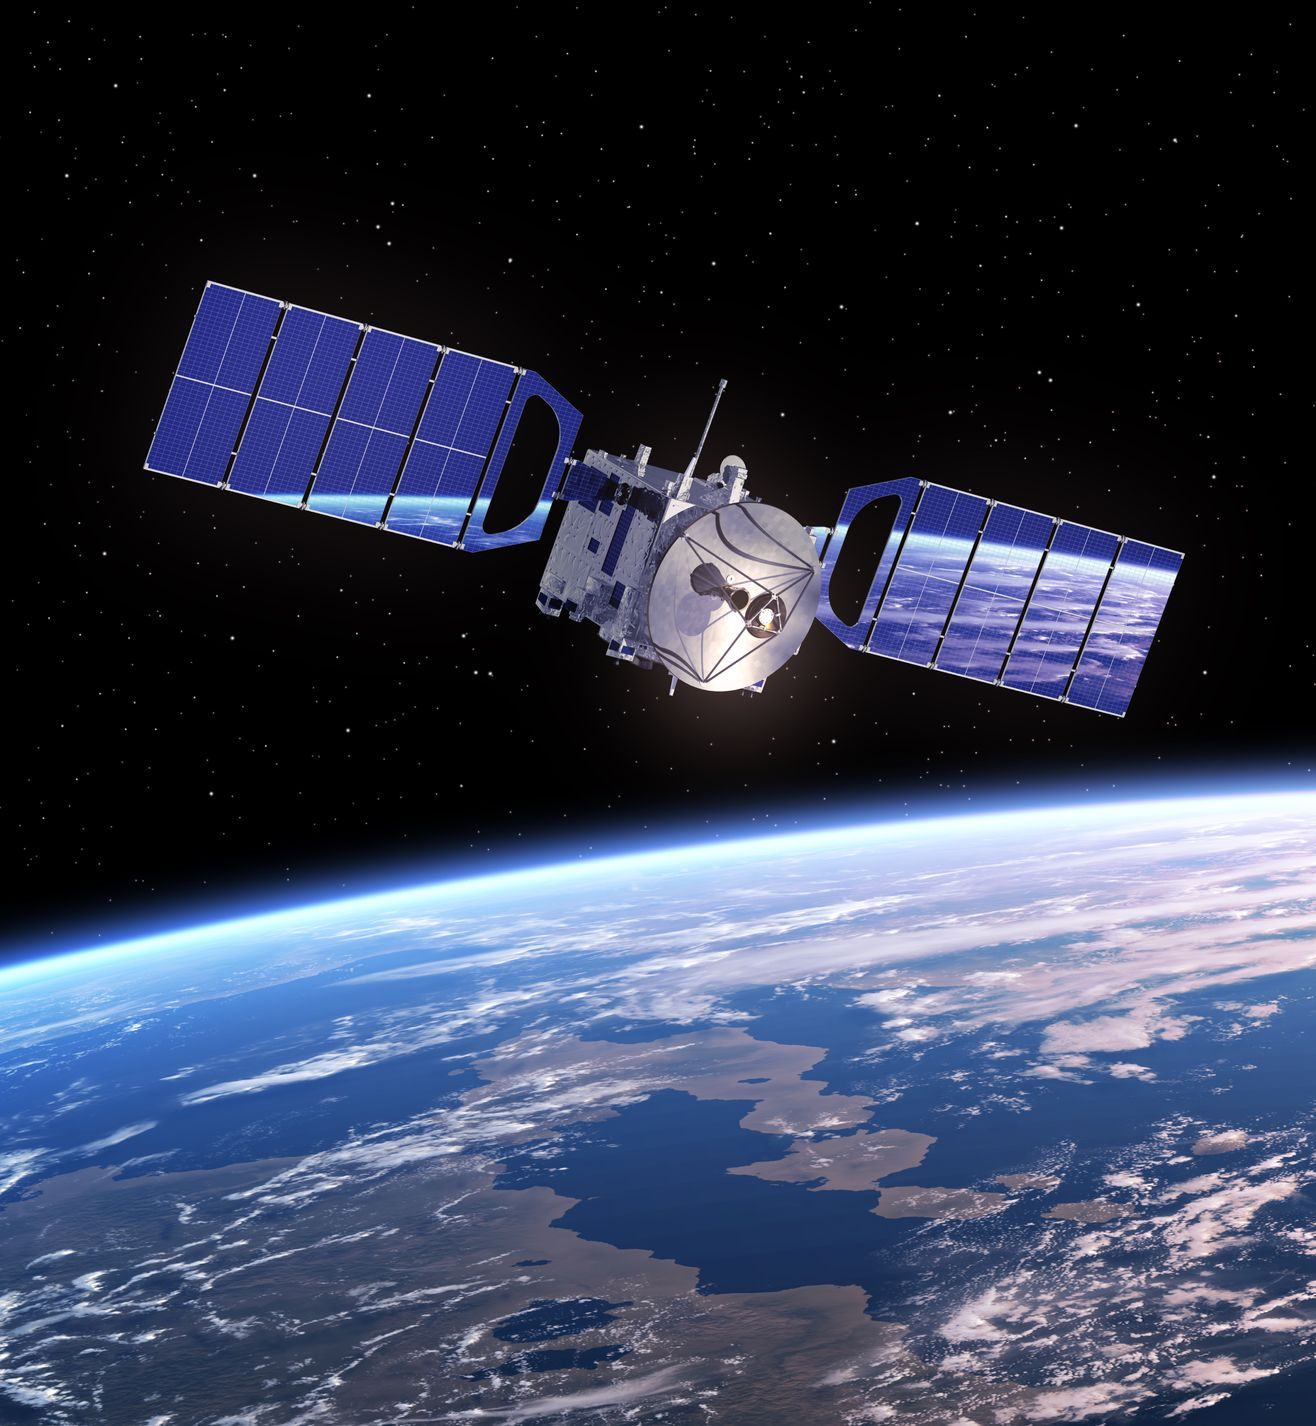 Artist's rendition of a satellite - mechanik/123RF Stock Photo